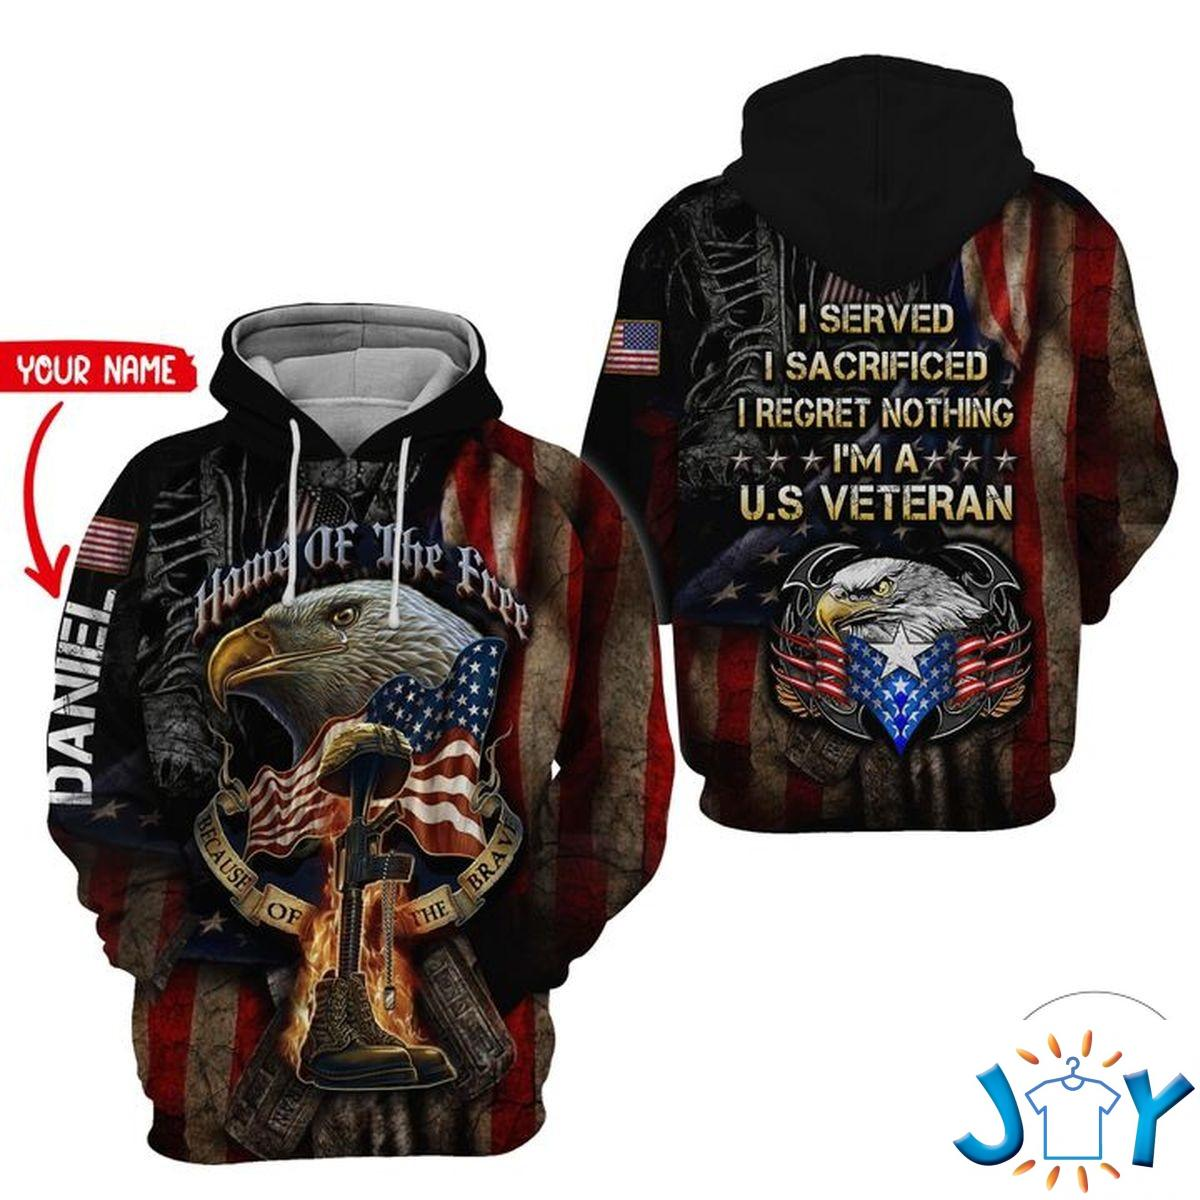 Personalized U.S. Army Veteran I Served I Sacrificed I Regret Nothing 3D Hoodie